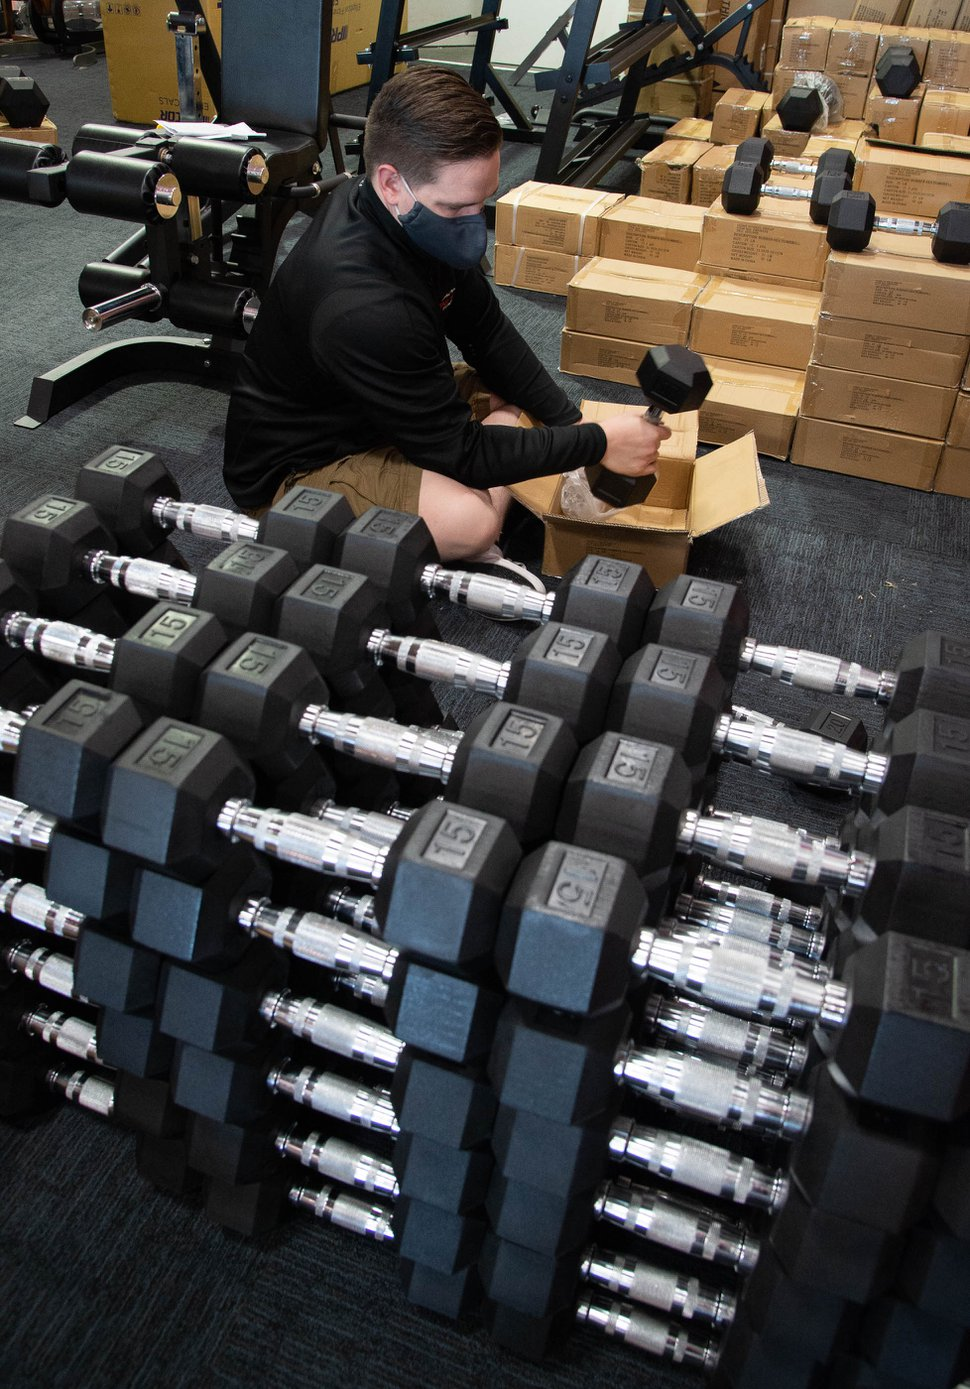 (Francisco Kjolseth | The Salt Lake Tribune) Chase Buckles, sales manager at Utah Home Fitness in Sandy, takes advantage of a slow moment to catch up on restocking inventory on Wednesday, Oct. 22, 2020.